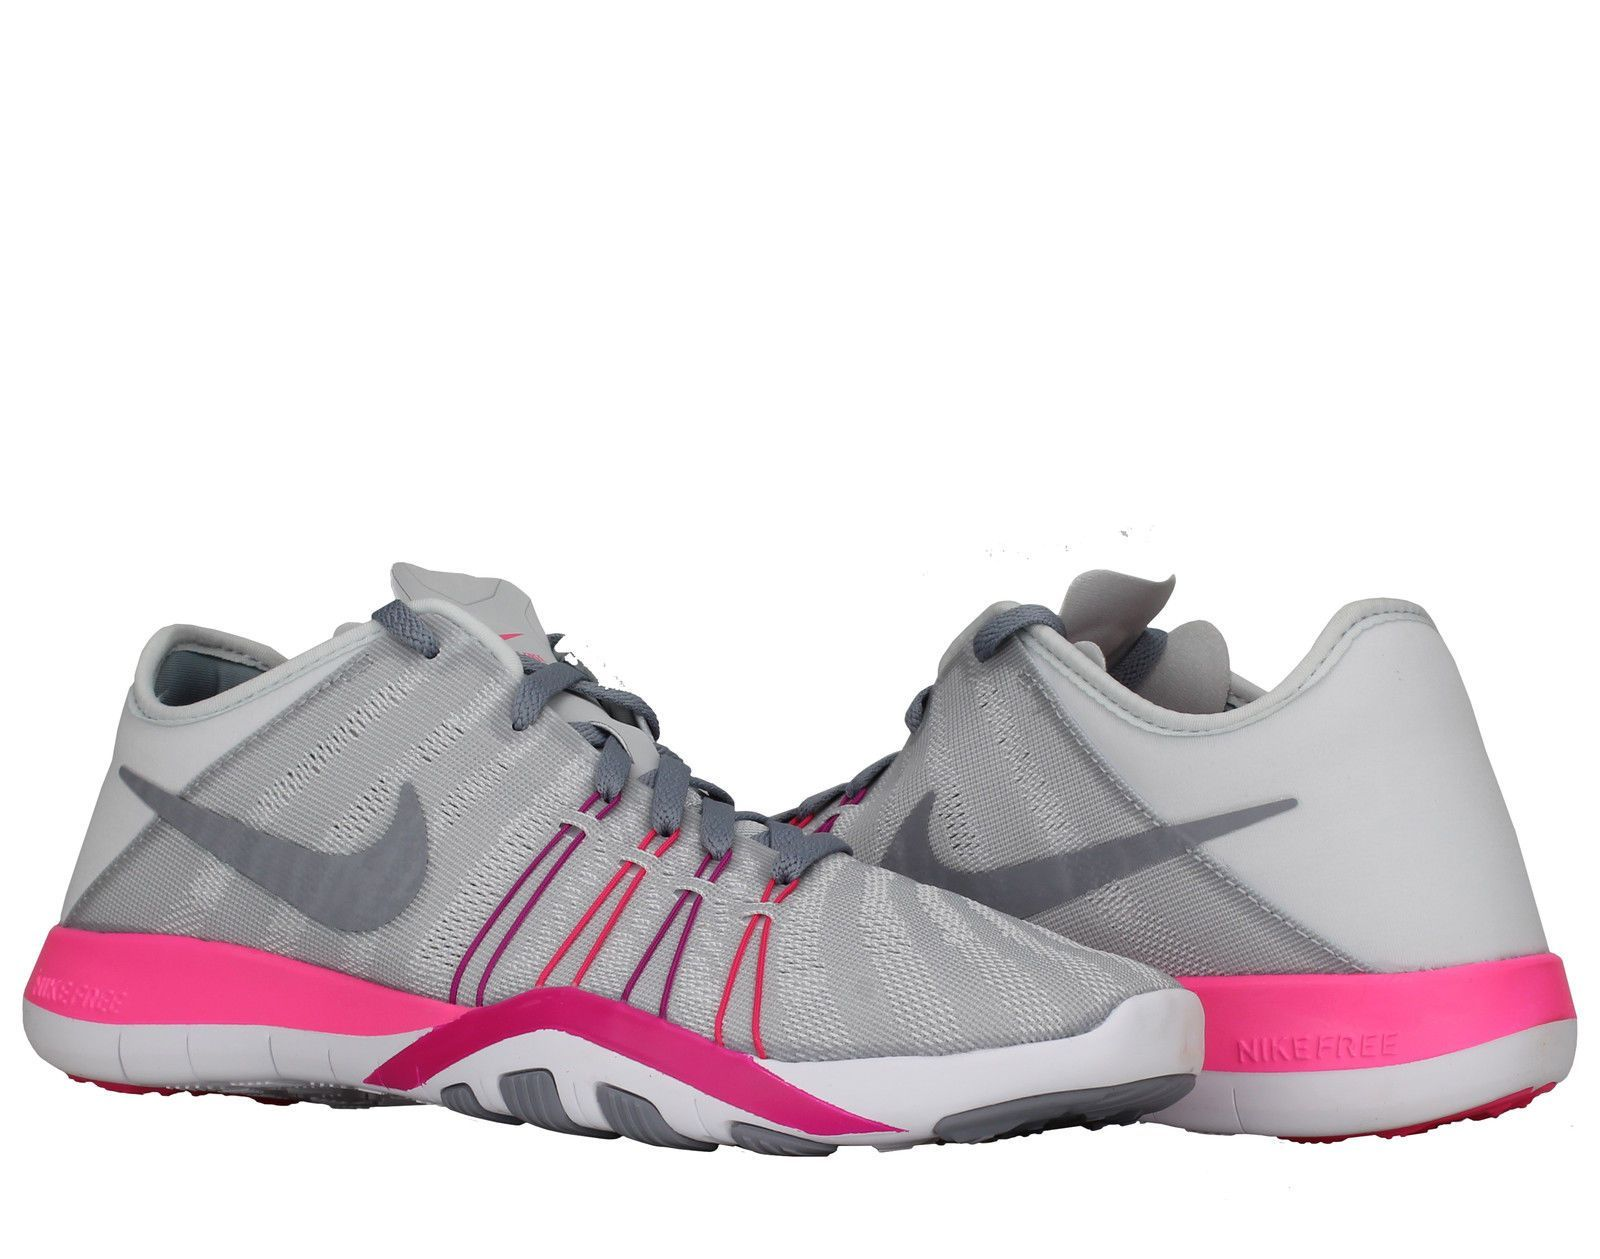 64da02f2e79f1 Nike Free Tr 6 Pure Platinum Pink-Fire Women S Cross Training Shoes 833413- 006